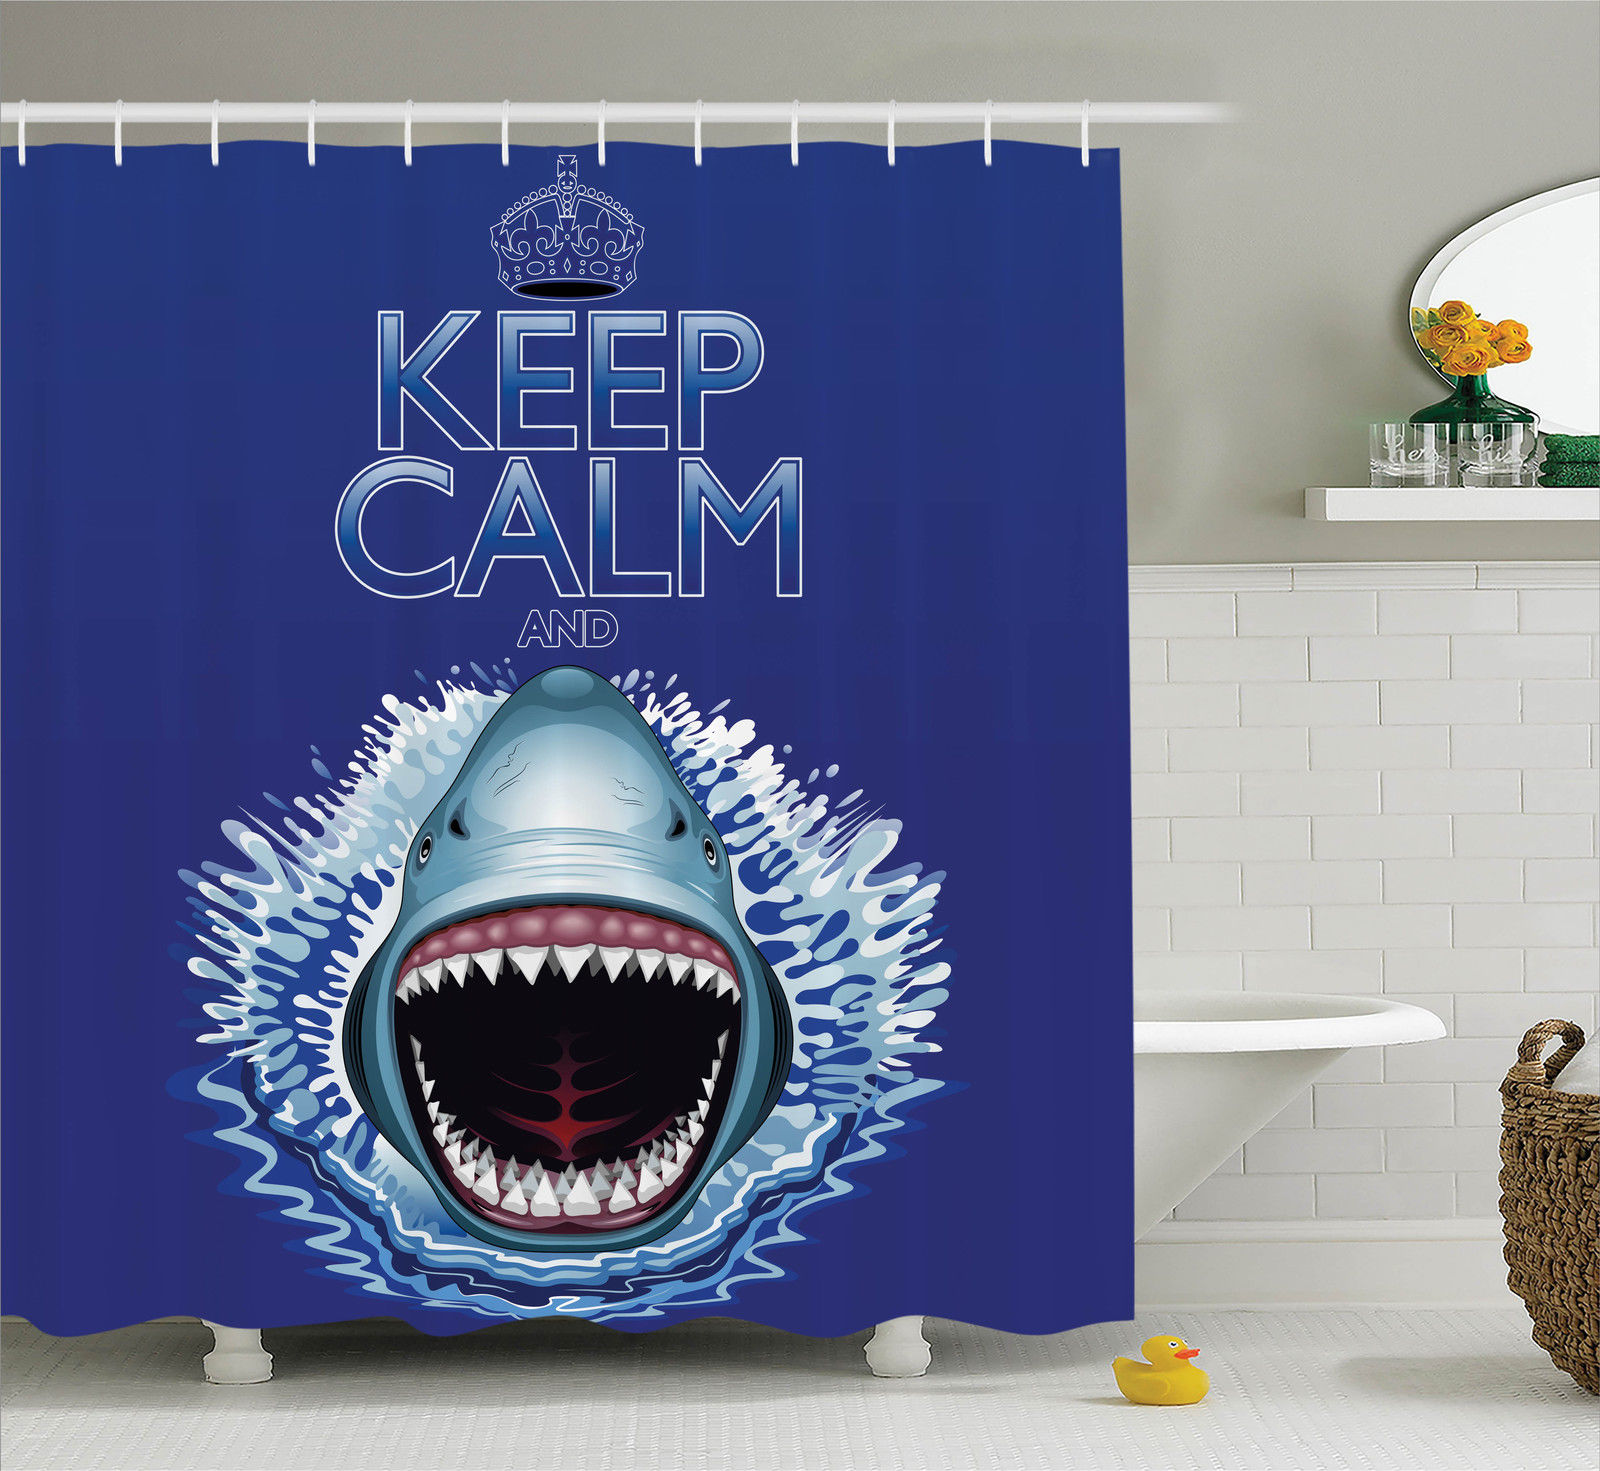 Sea Animals Decor Keep Calm And Shark Jaws Attack Predators Hunter Dangerous Wild, Bathroom Accessories, 69W X 84L Inches Extra Long, By Ambesonne